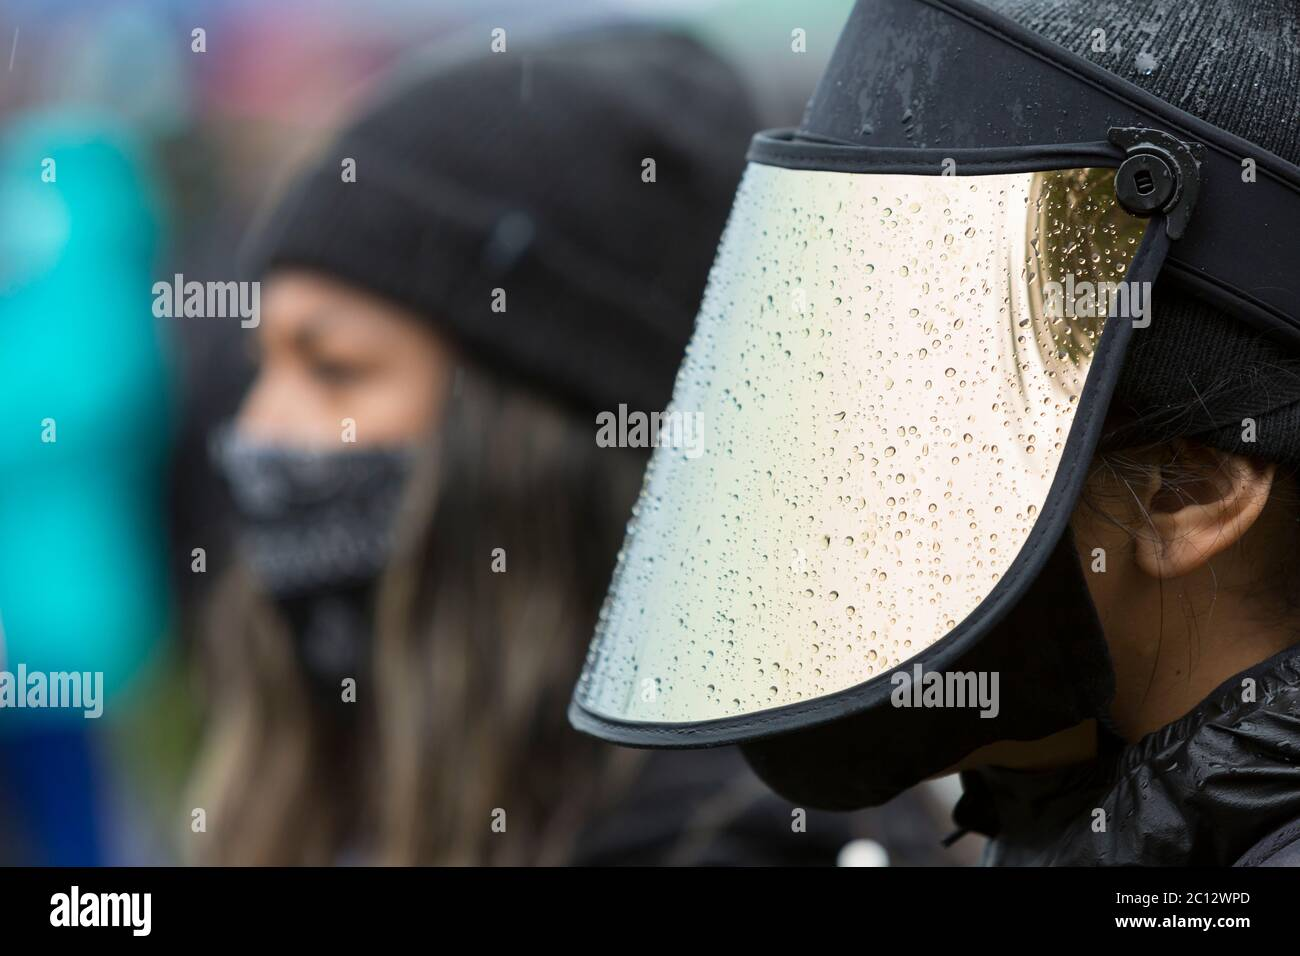 A supporter in a face shield braved heavy rains to attend the Statewide Silent March and General Strike at Judkins Park in Seattle's Central District neighborhood on Friday, June 12, 2020. Black Lives Matter Seattle-King County organized the statewide day of action and silent march to honor lives lost in support of all Black lives in Washington State. Stock Photo